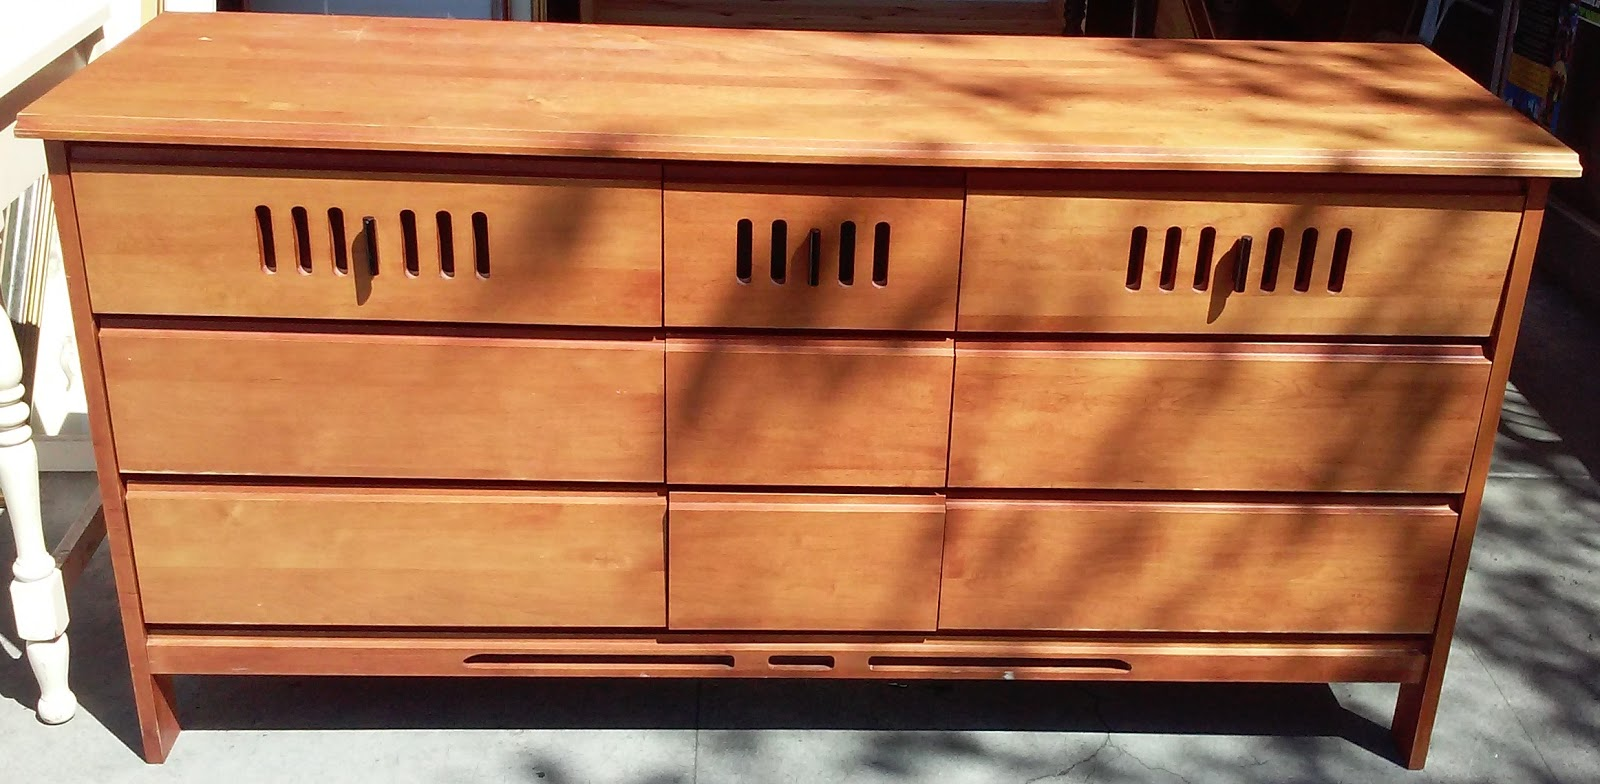 Uhuru Furniture Collectibles Sold 5 39 Cherry Finish